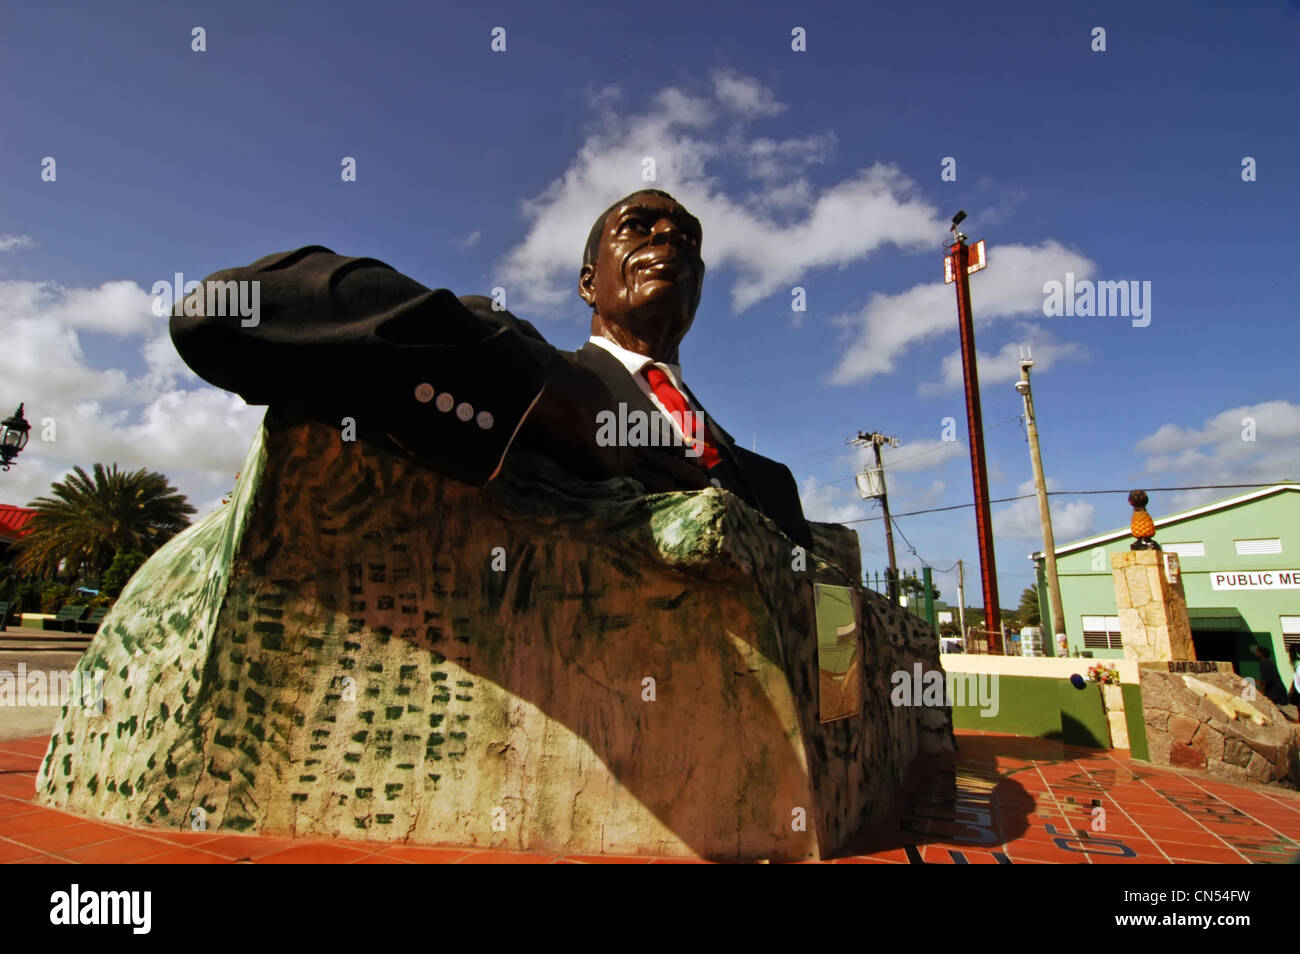 Antigua and Barbuda, Antigua island, St John's, statue of Sir Vere Cornwall Bird, father of the Nation - Stock Image